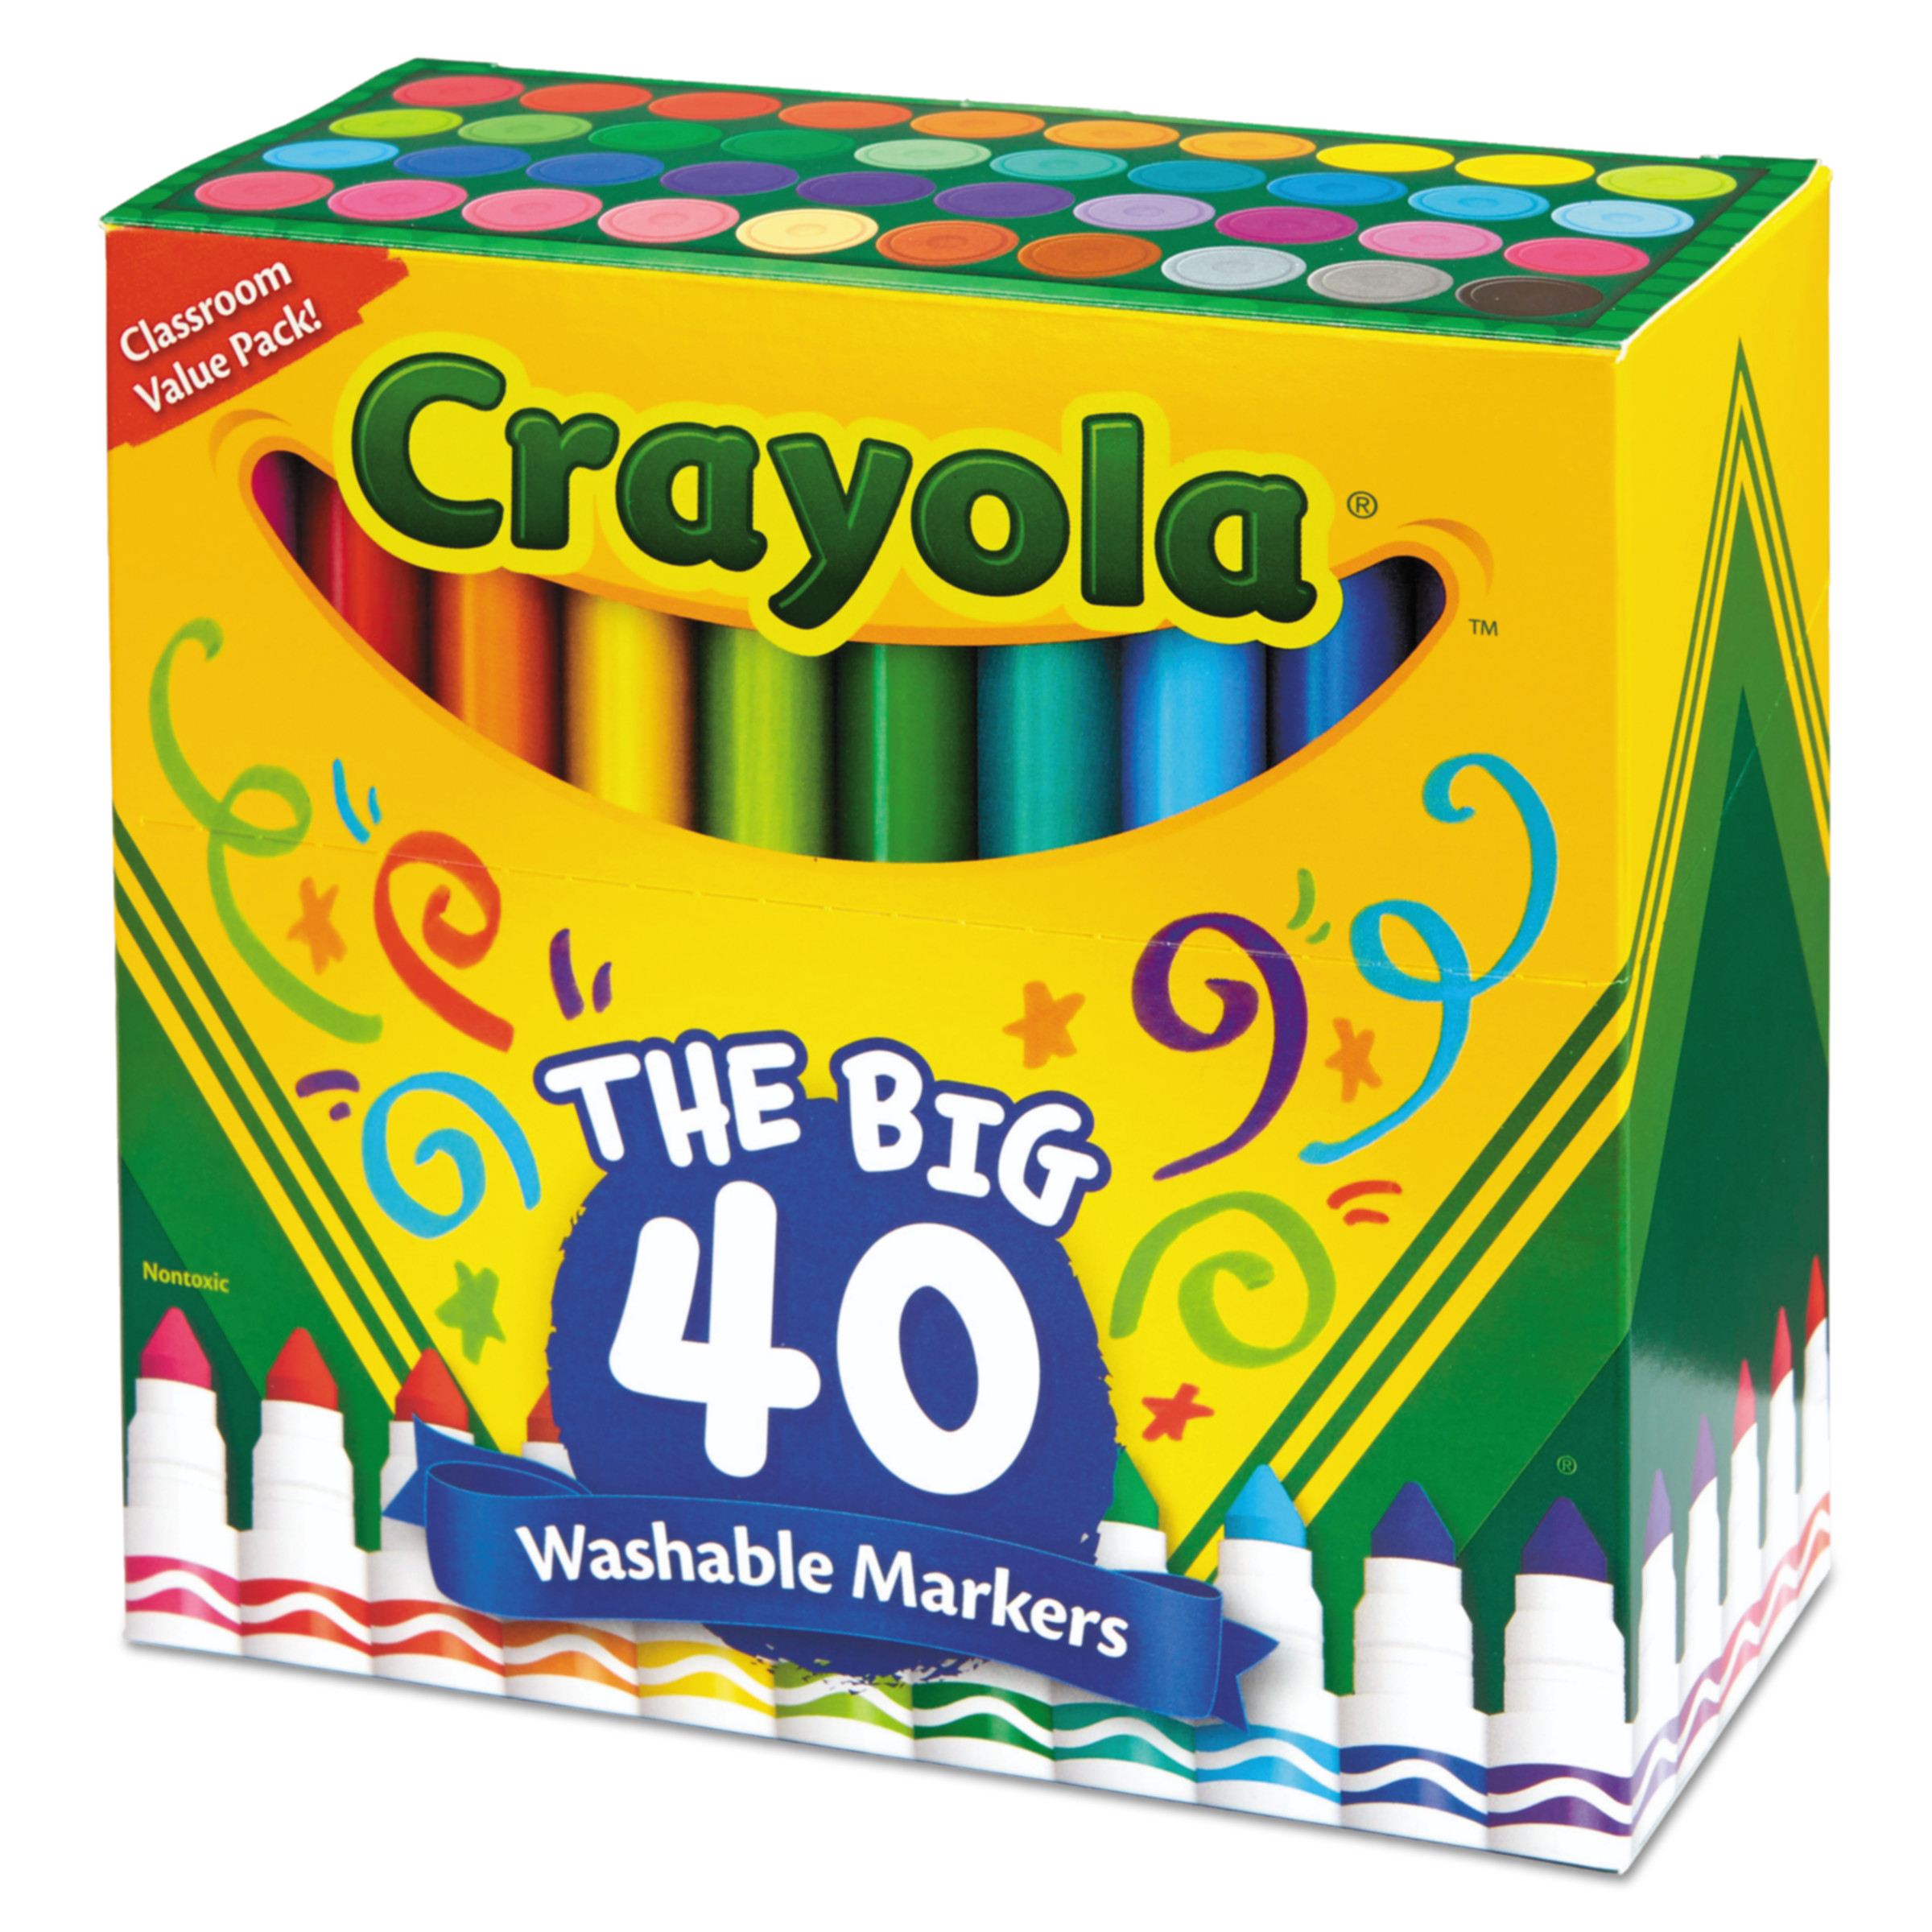 Crayola Broad Line Washable Markers, Assorted Colors, 40 Count